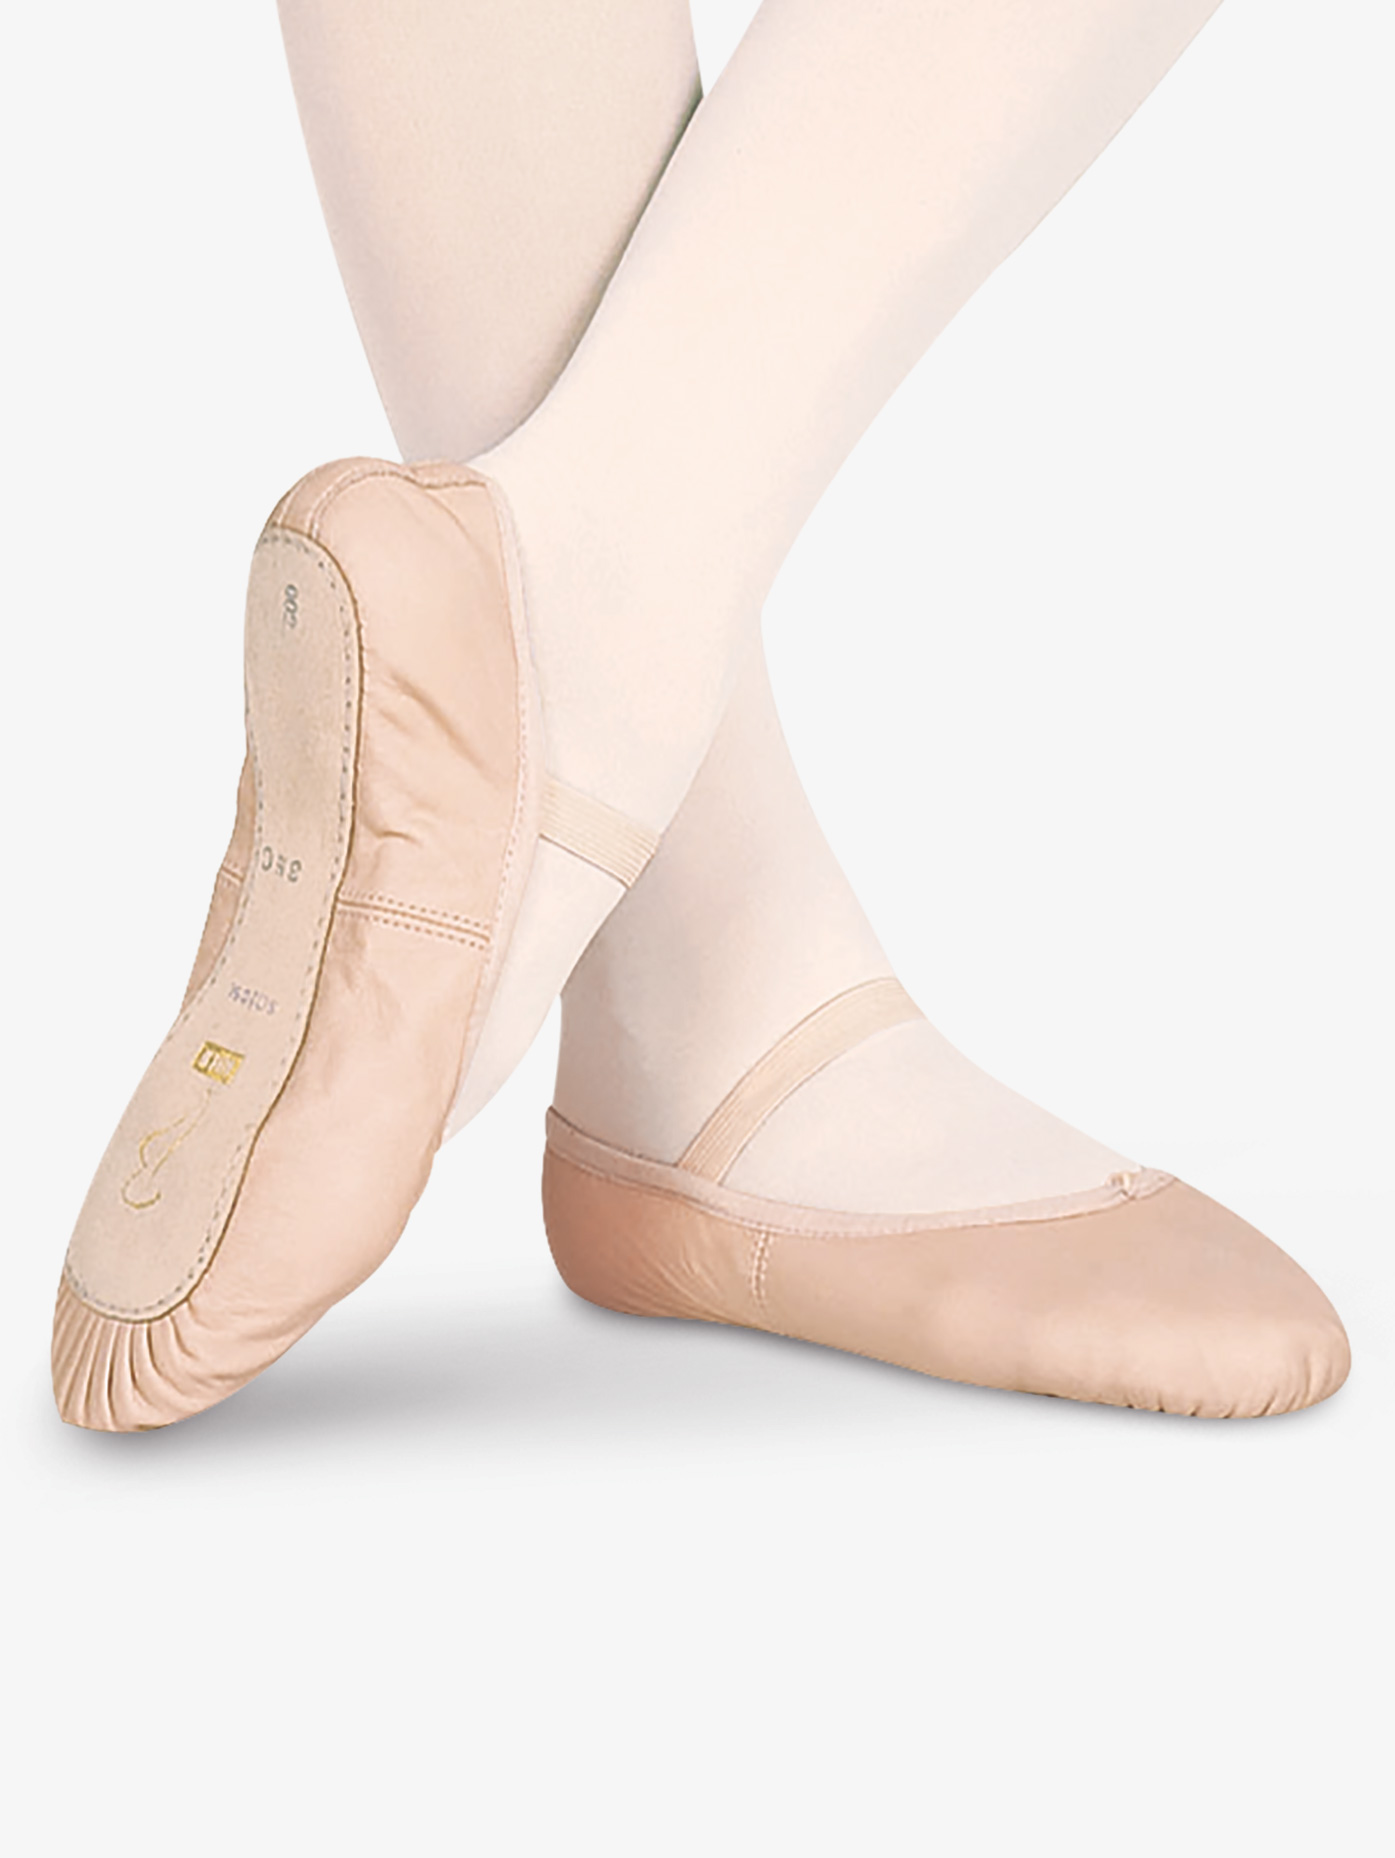 Dansoft Leather Full Sole Ballet Shoes Ballet Shoes Bloch - Abt ballet shoes